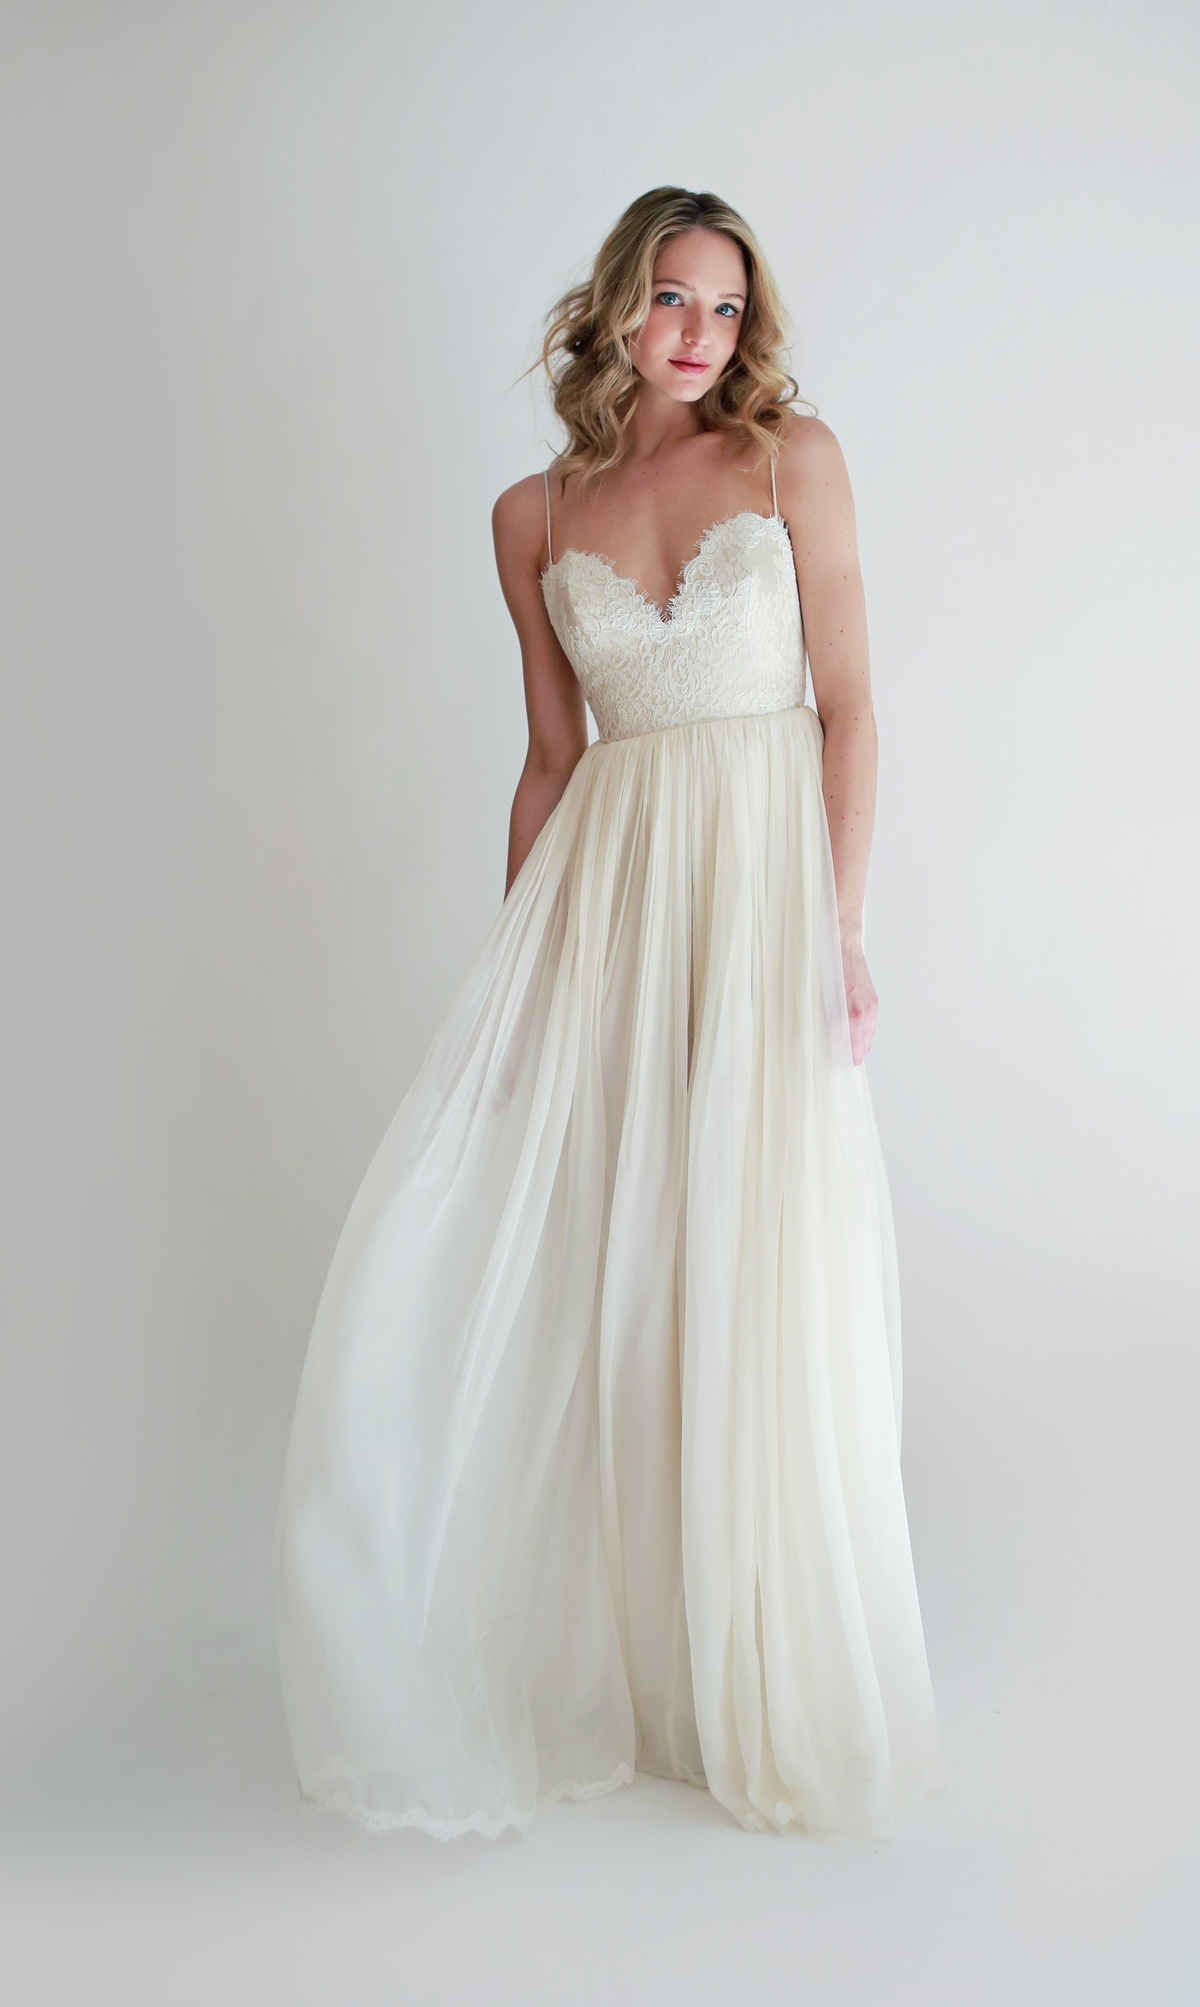 Best beach wedding dresses for guests  Best Beach Wedding Dresses for   Leanne marshall Wedding dress